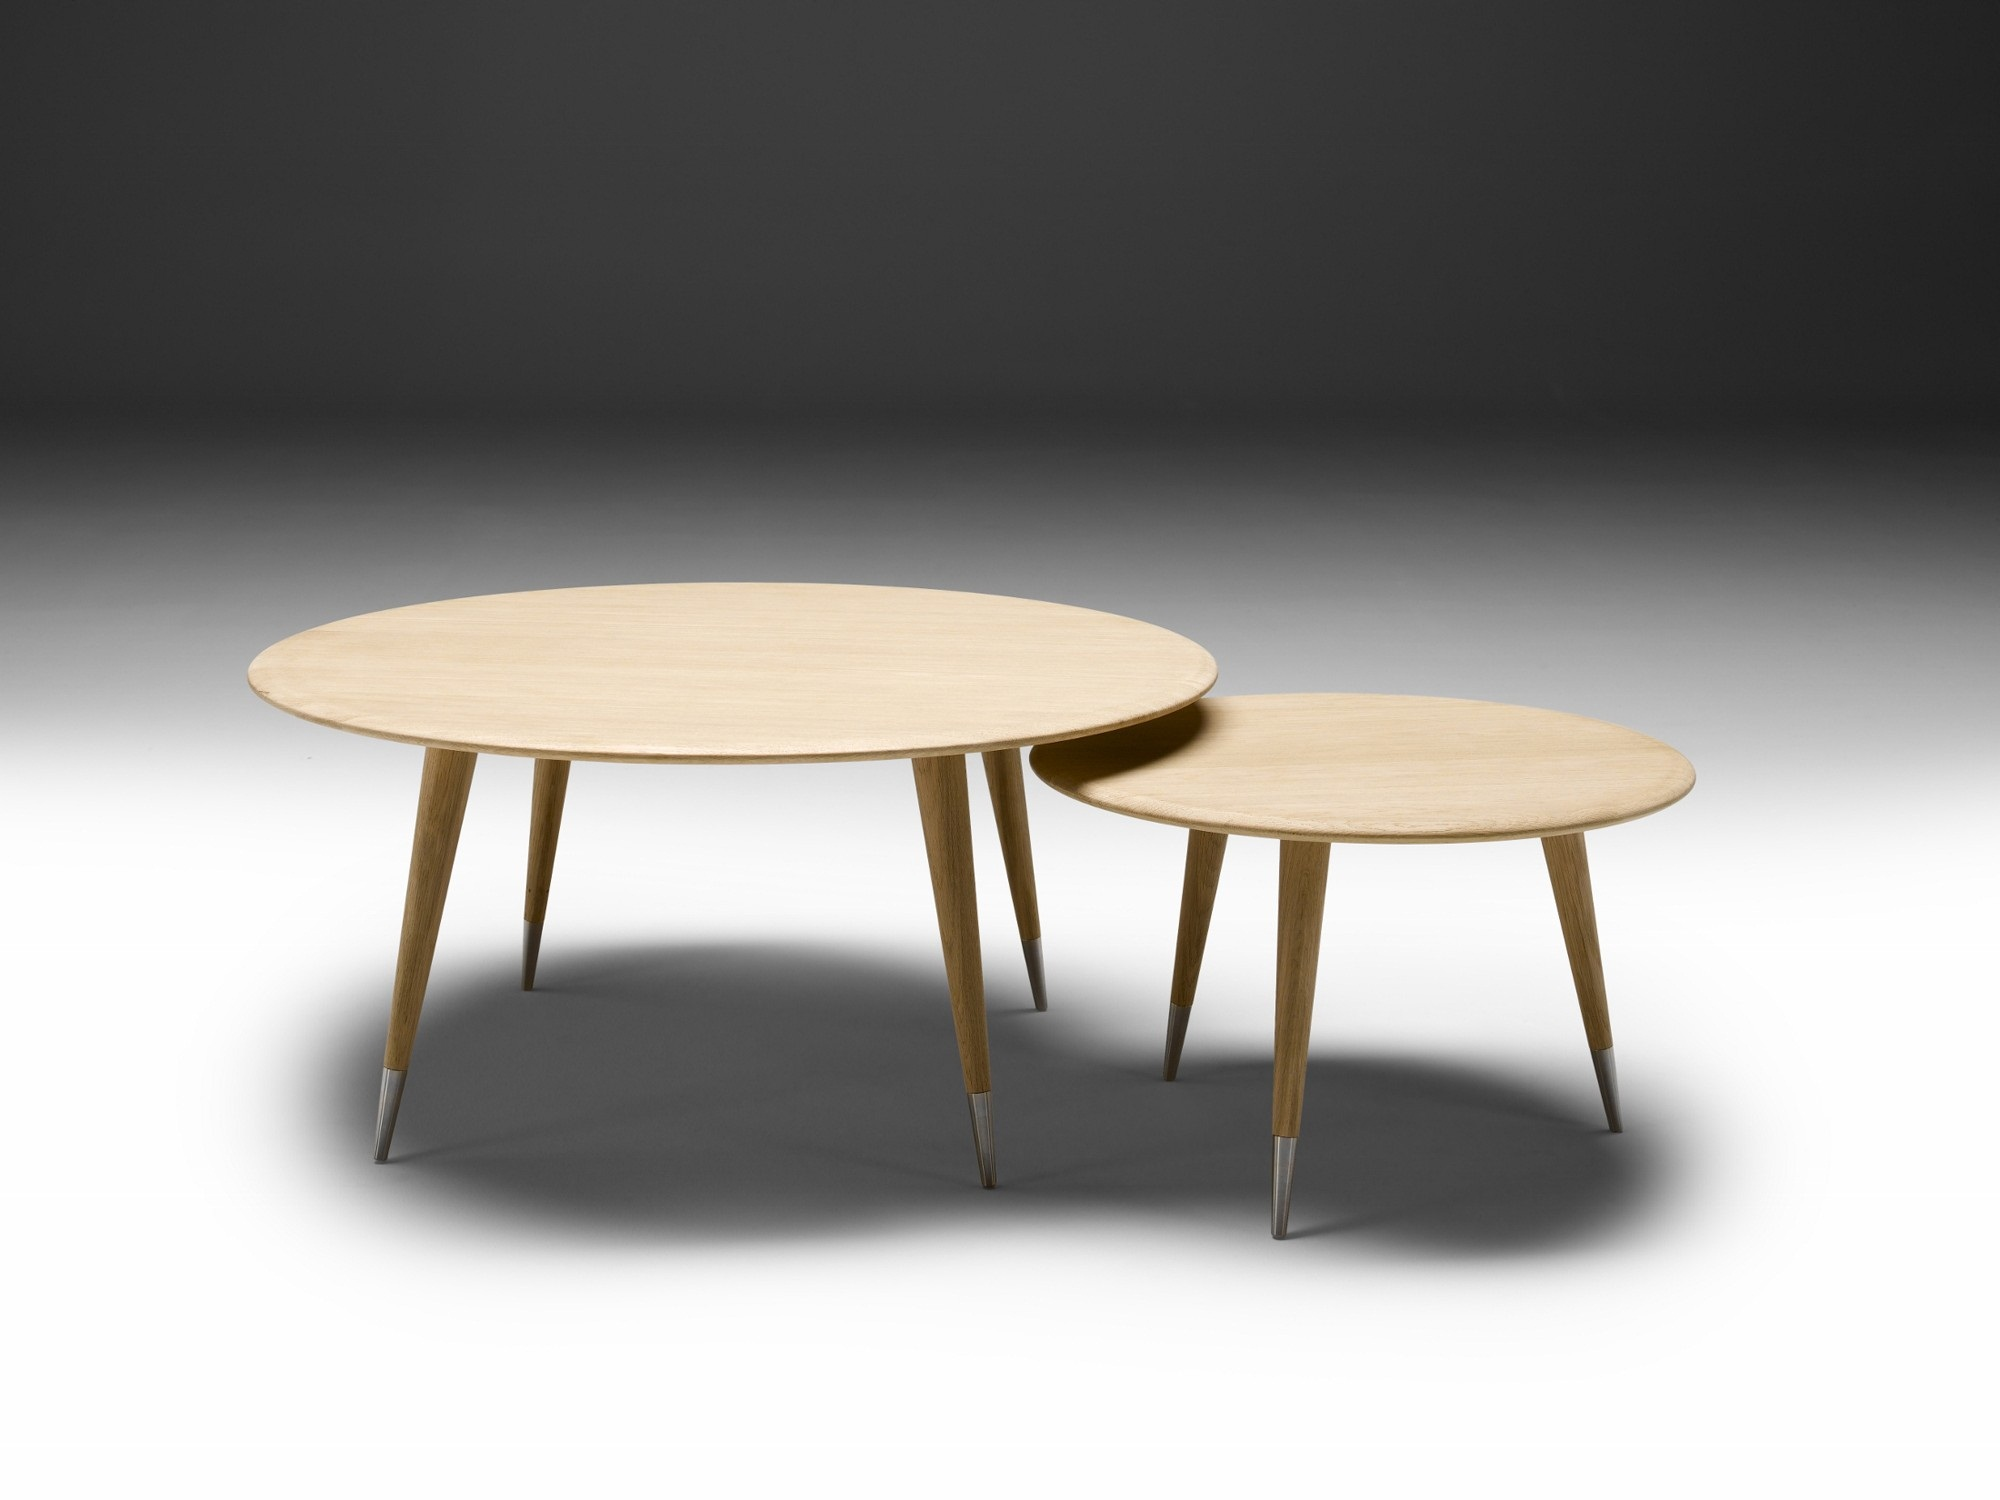 plus - Mobilier Scandinave